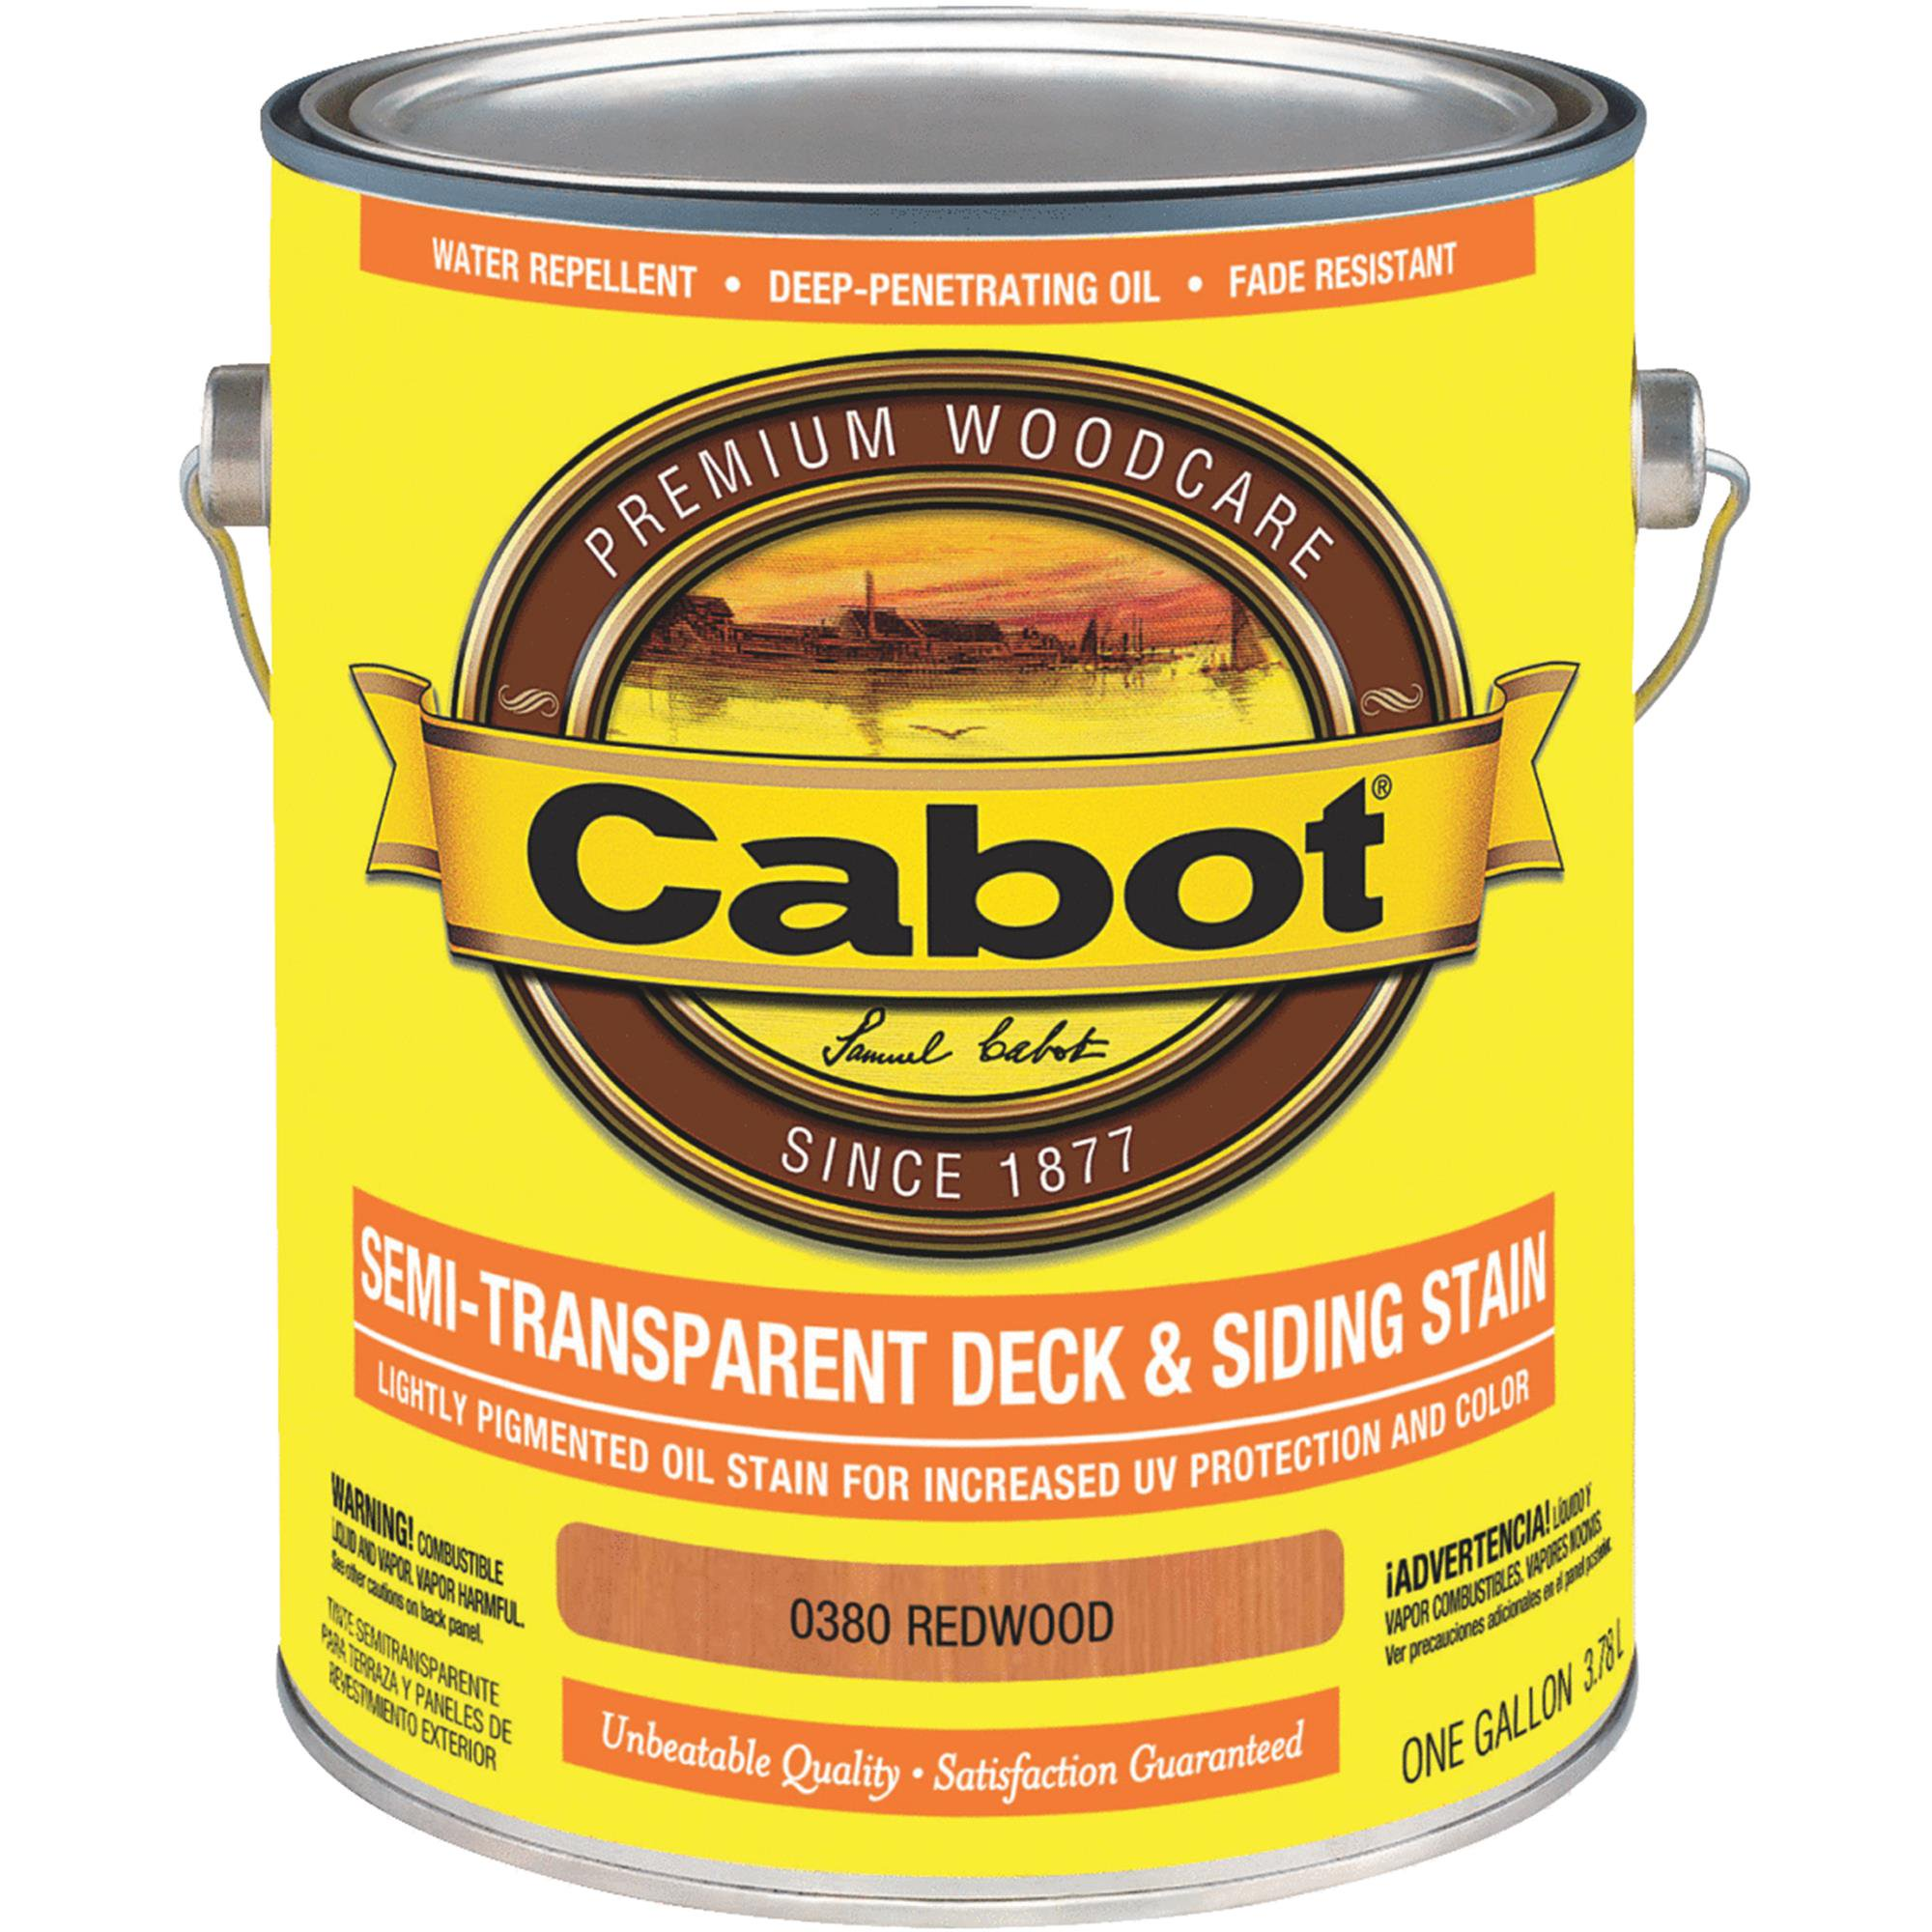 Cabot Semi-Transparent Deck & Siding Exterior Stain